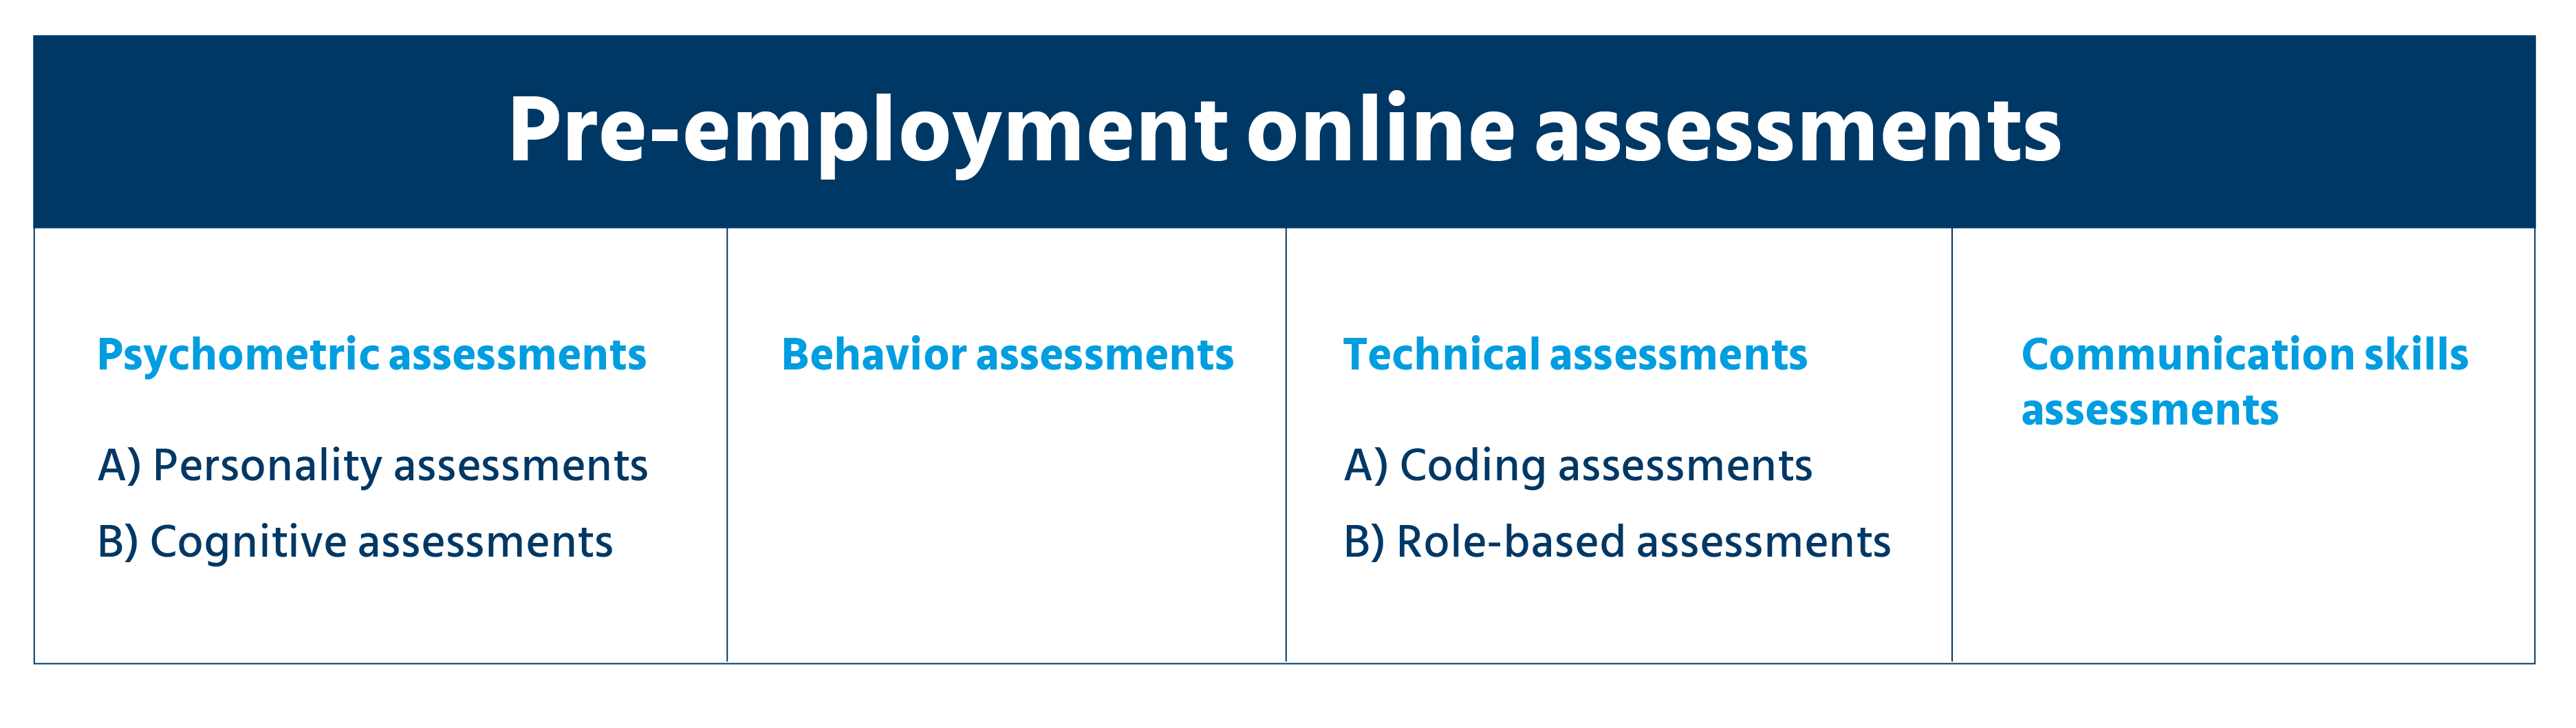 Utilizing online assessments in lateral recruitment